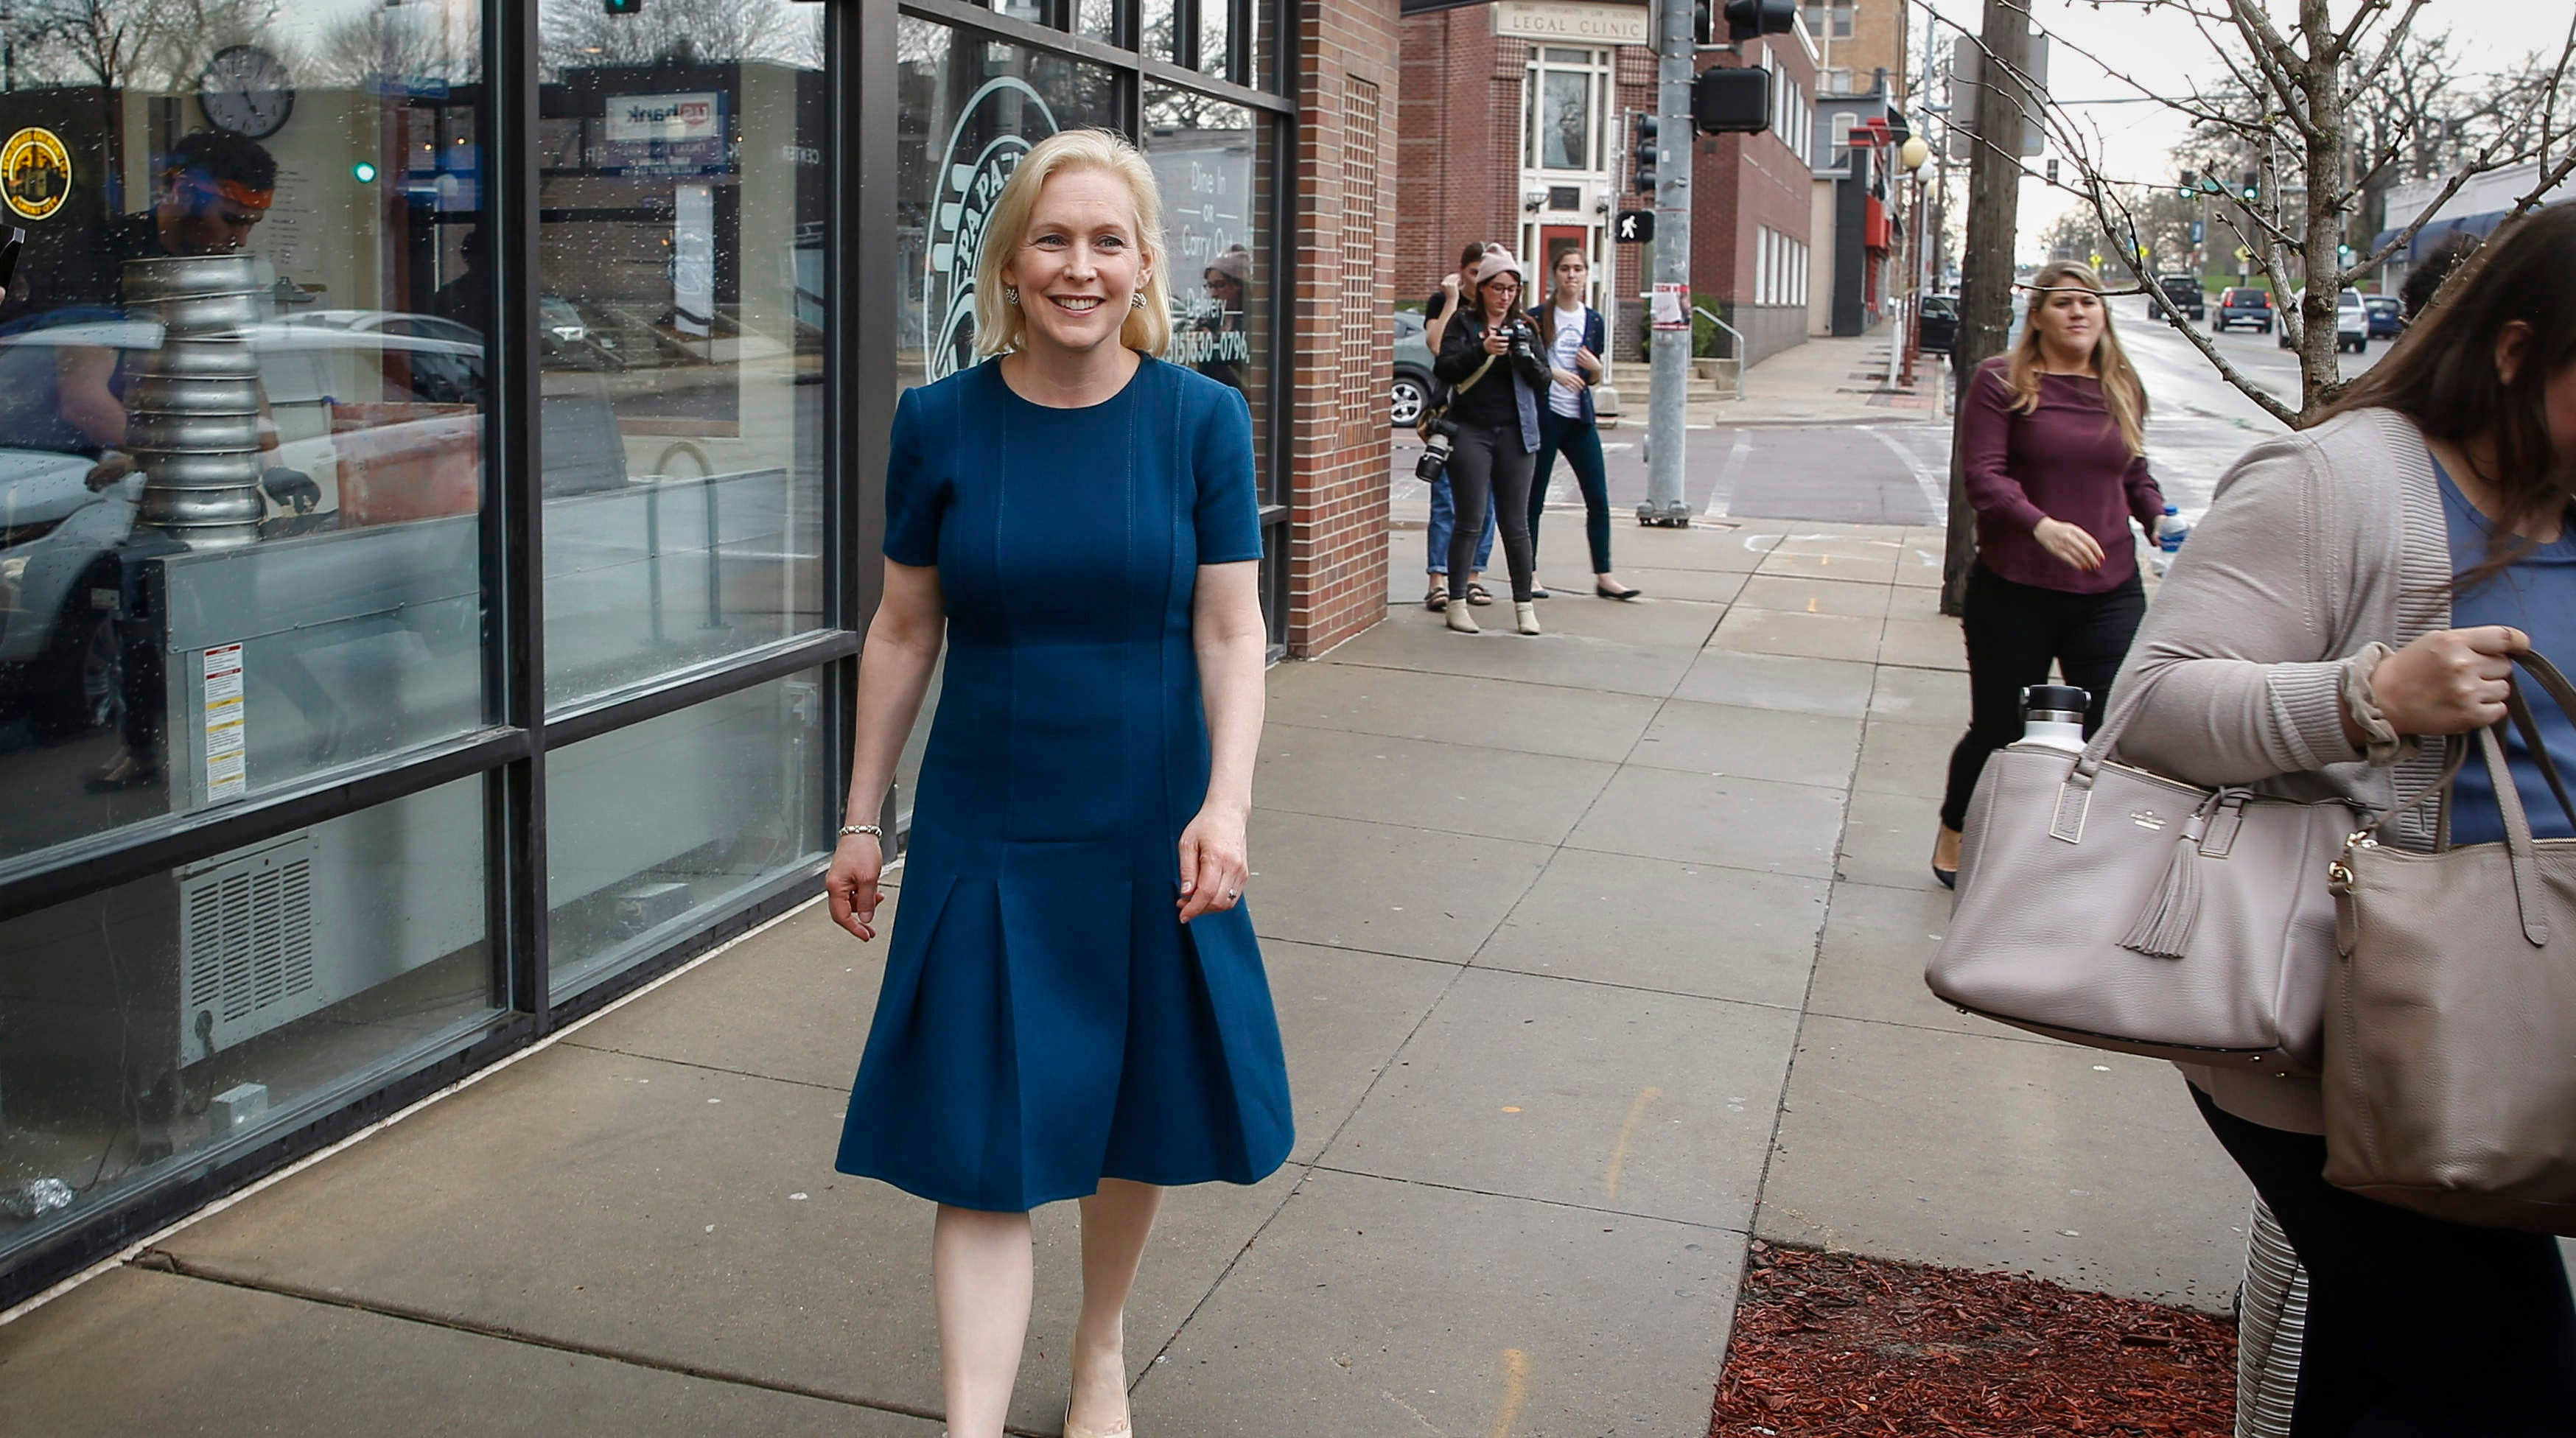 U.S. Senator and democratic presidential candidate hopeful Kirsten Gillibrand (D-NY) makes her way to her car after she visited with supporters at Papa Keno's in Des Moines' Drake neighborhood on Tuesday, April 17, 2019.